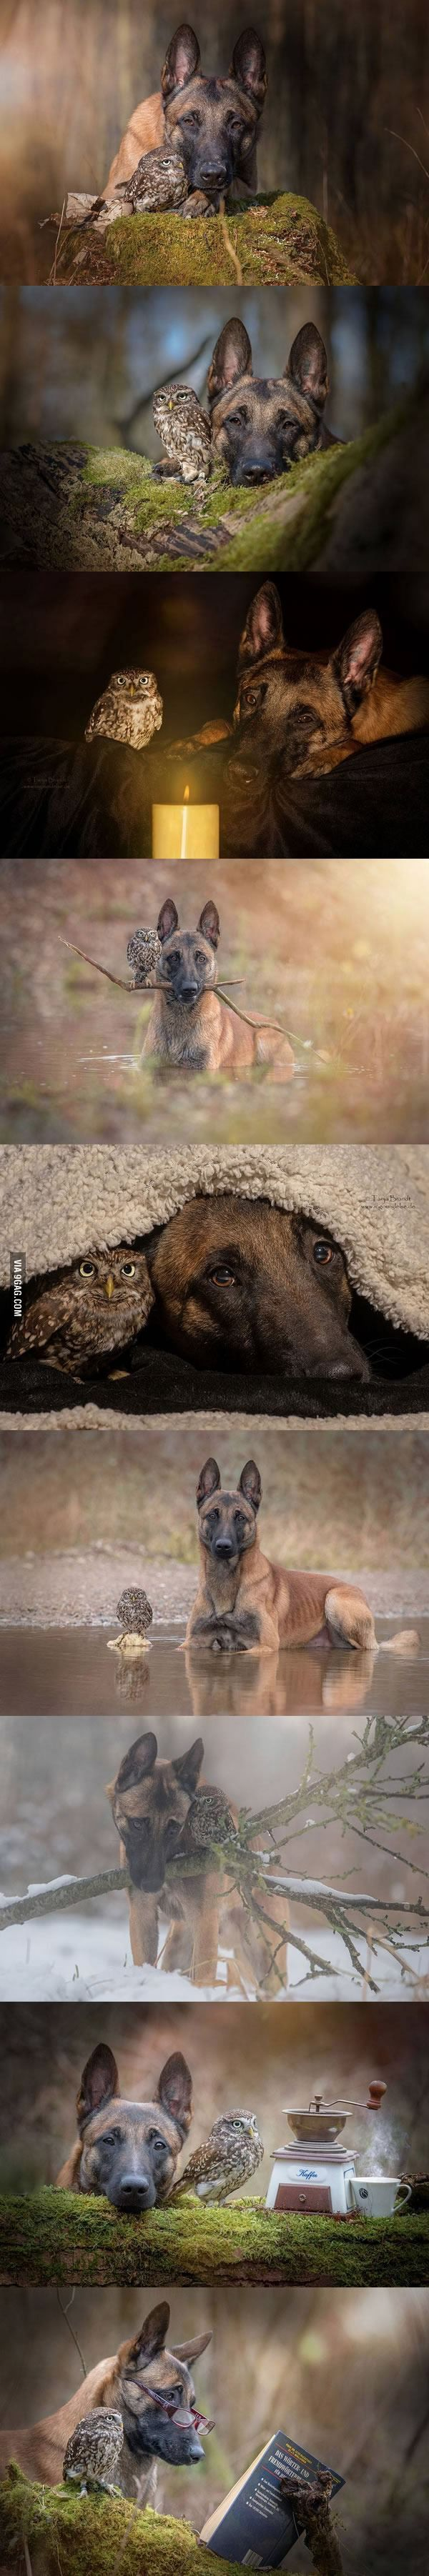 A Belgian Malinois and an Owl formed an unlikely friendship